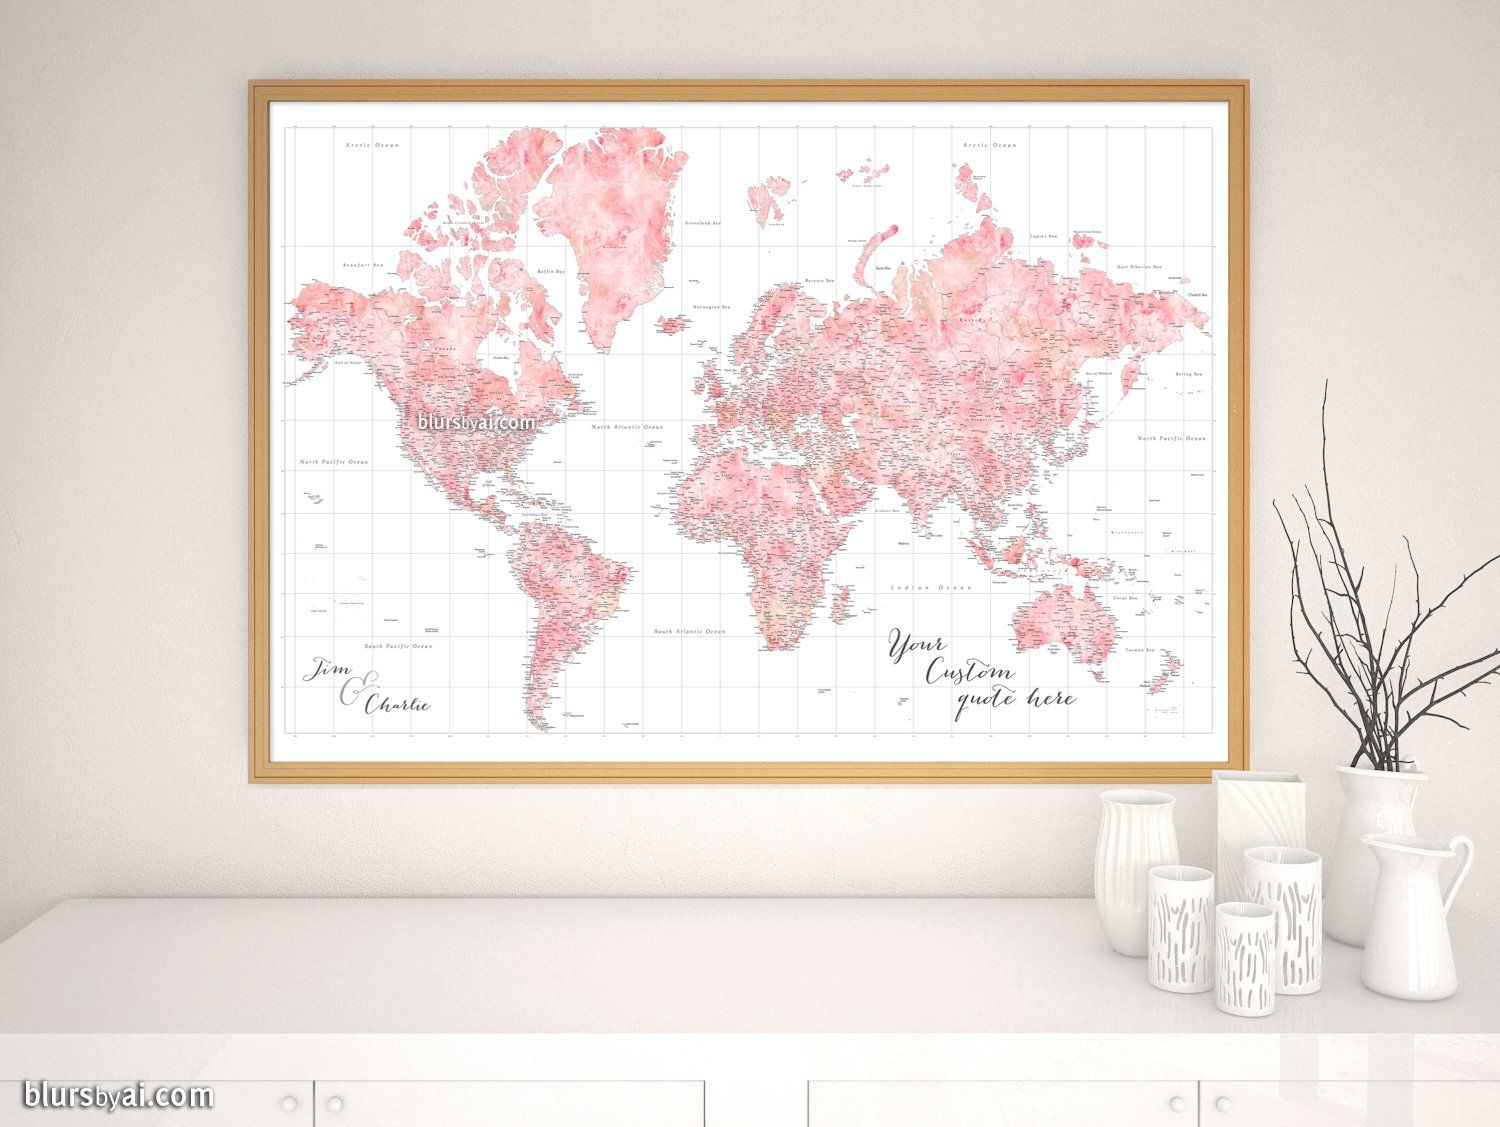 The most detailed world map you'll find, a designer world ... Designer World Map on world map tester, world map costume, world map dresses, world map size, world map vintage, world map modern, world map business, world map gold, world map bedroom decor, world map retail, world map illustrator, world map cook, world map color, world map creator, world map sports, world map rain, world map photography, world map teacher, world map design, world map name,